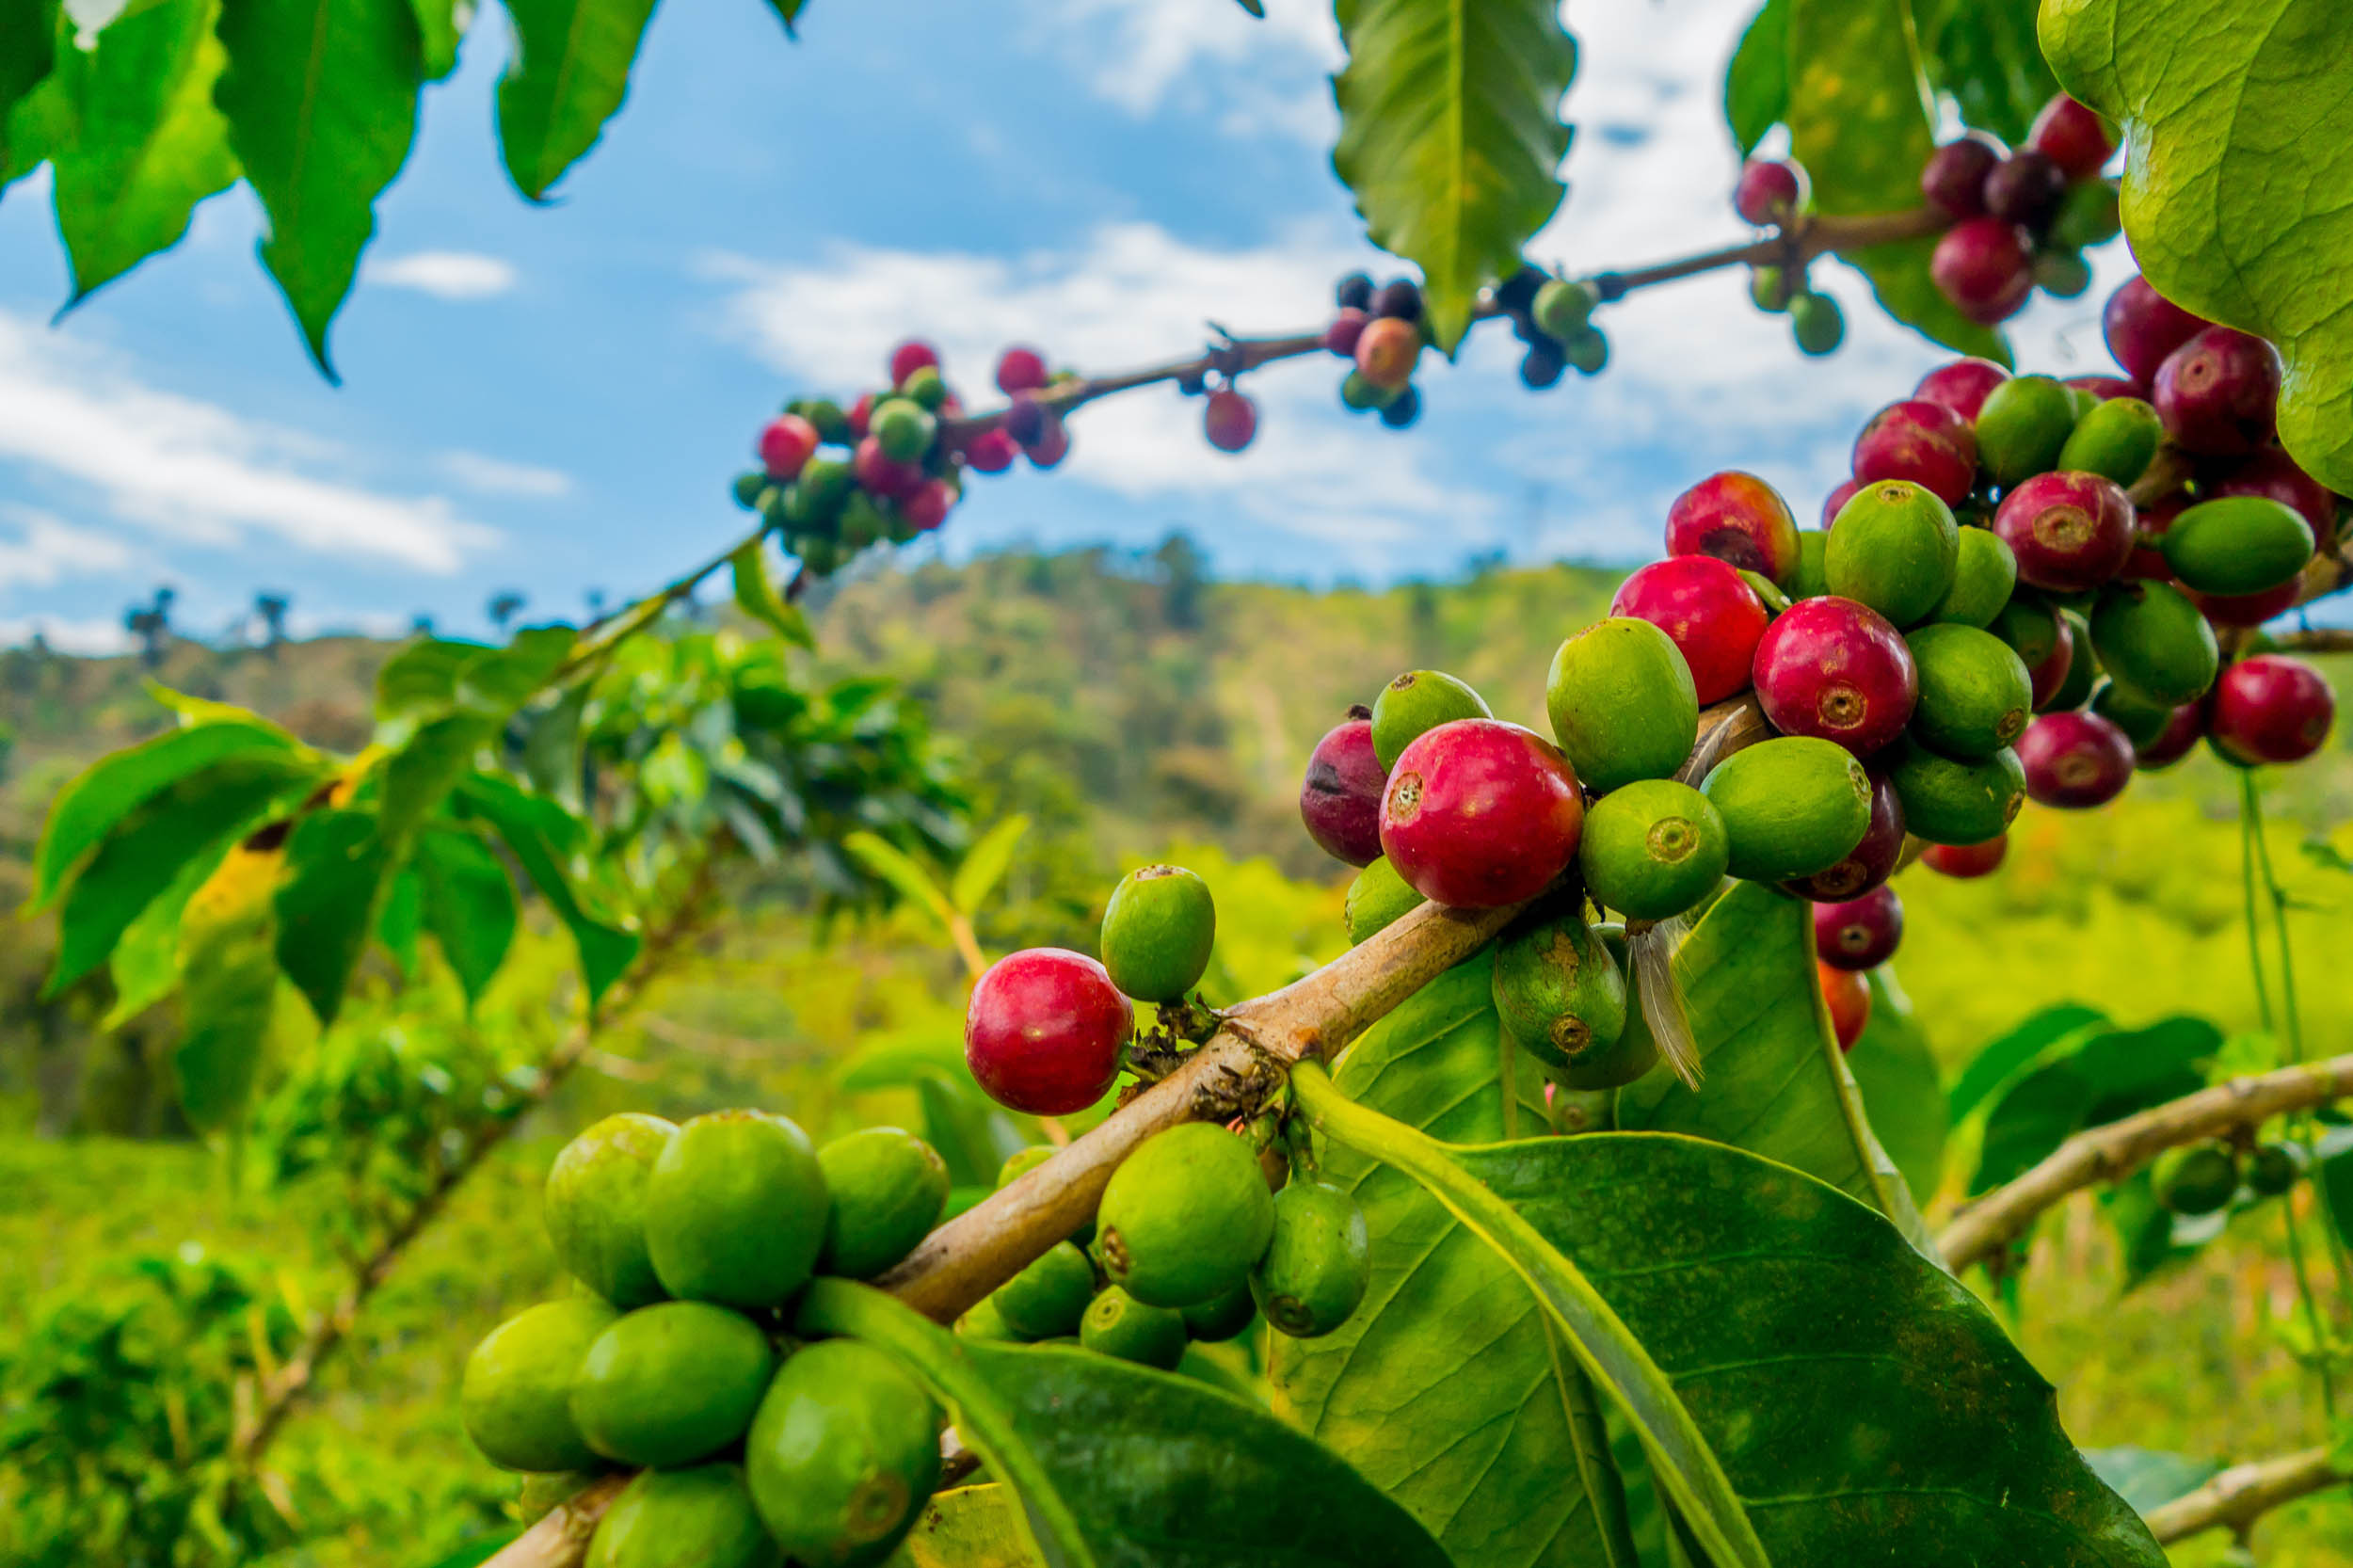 Grow coffee beans during climate change